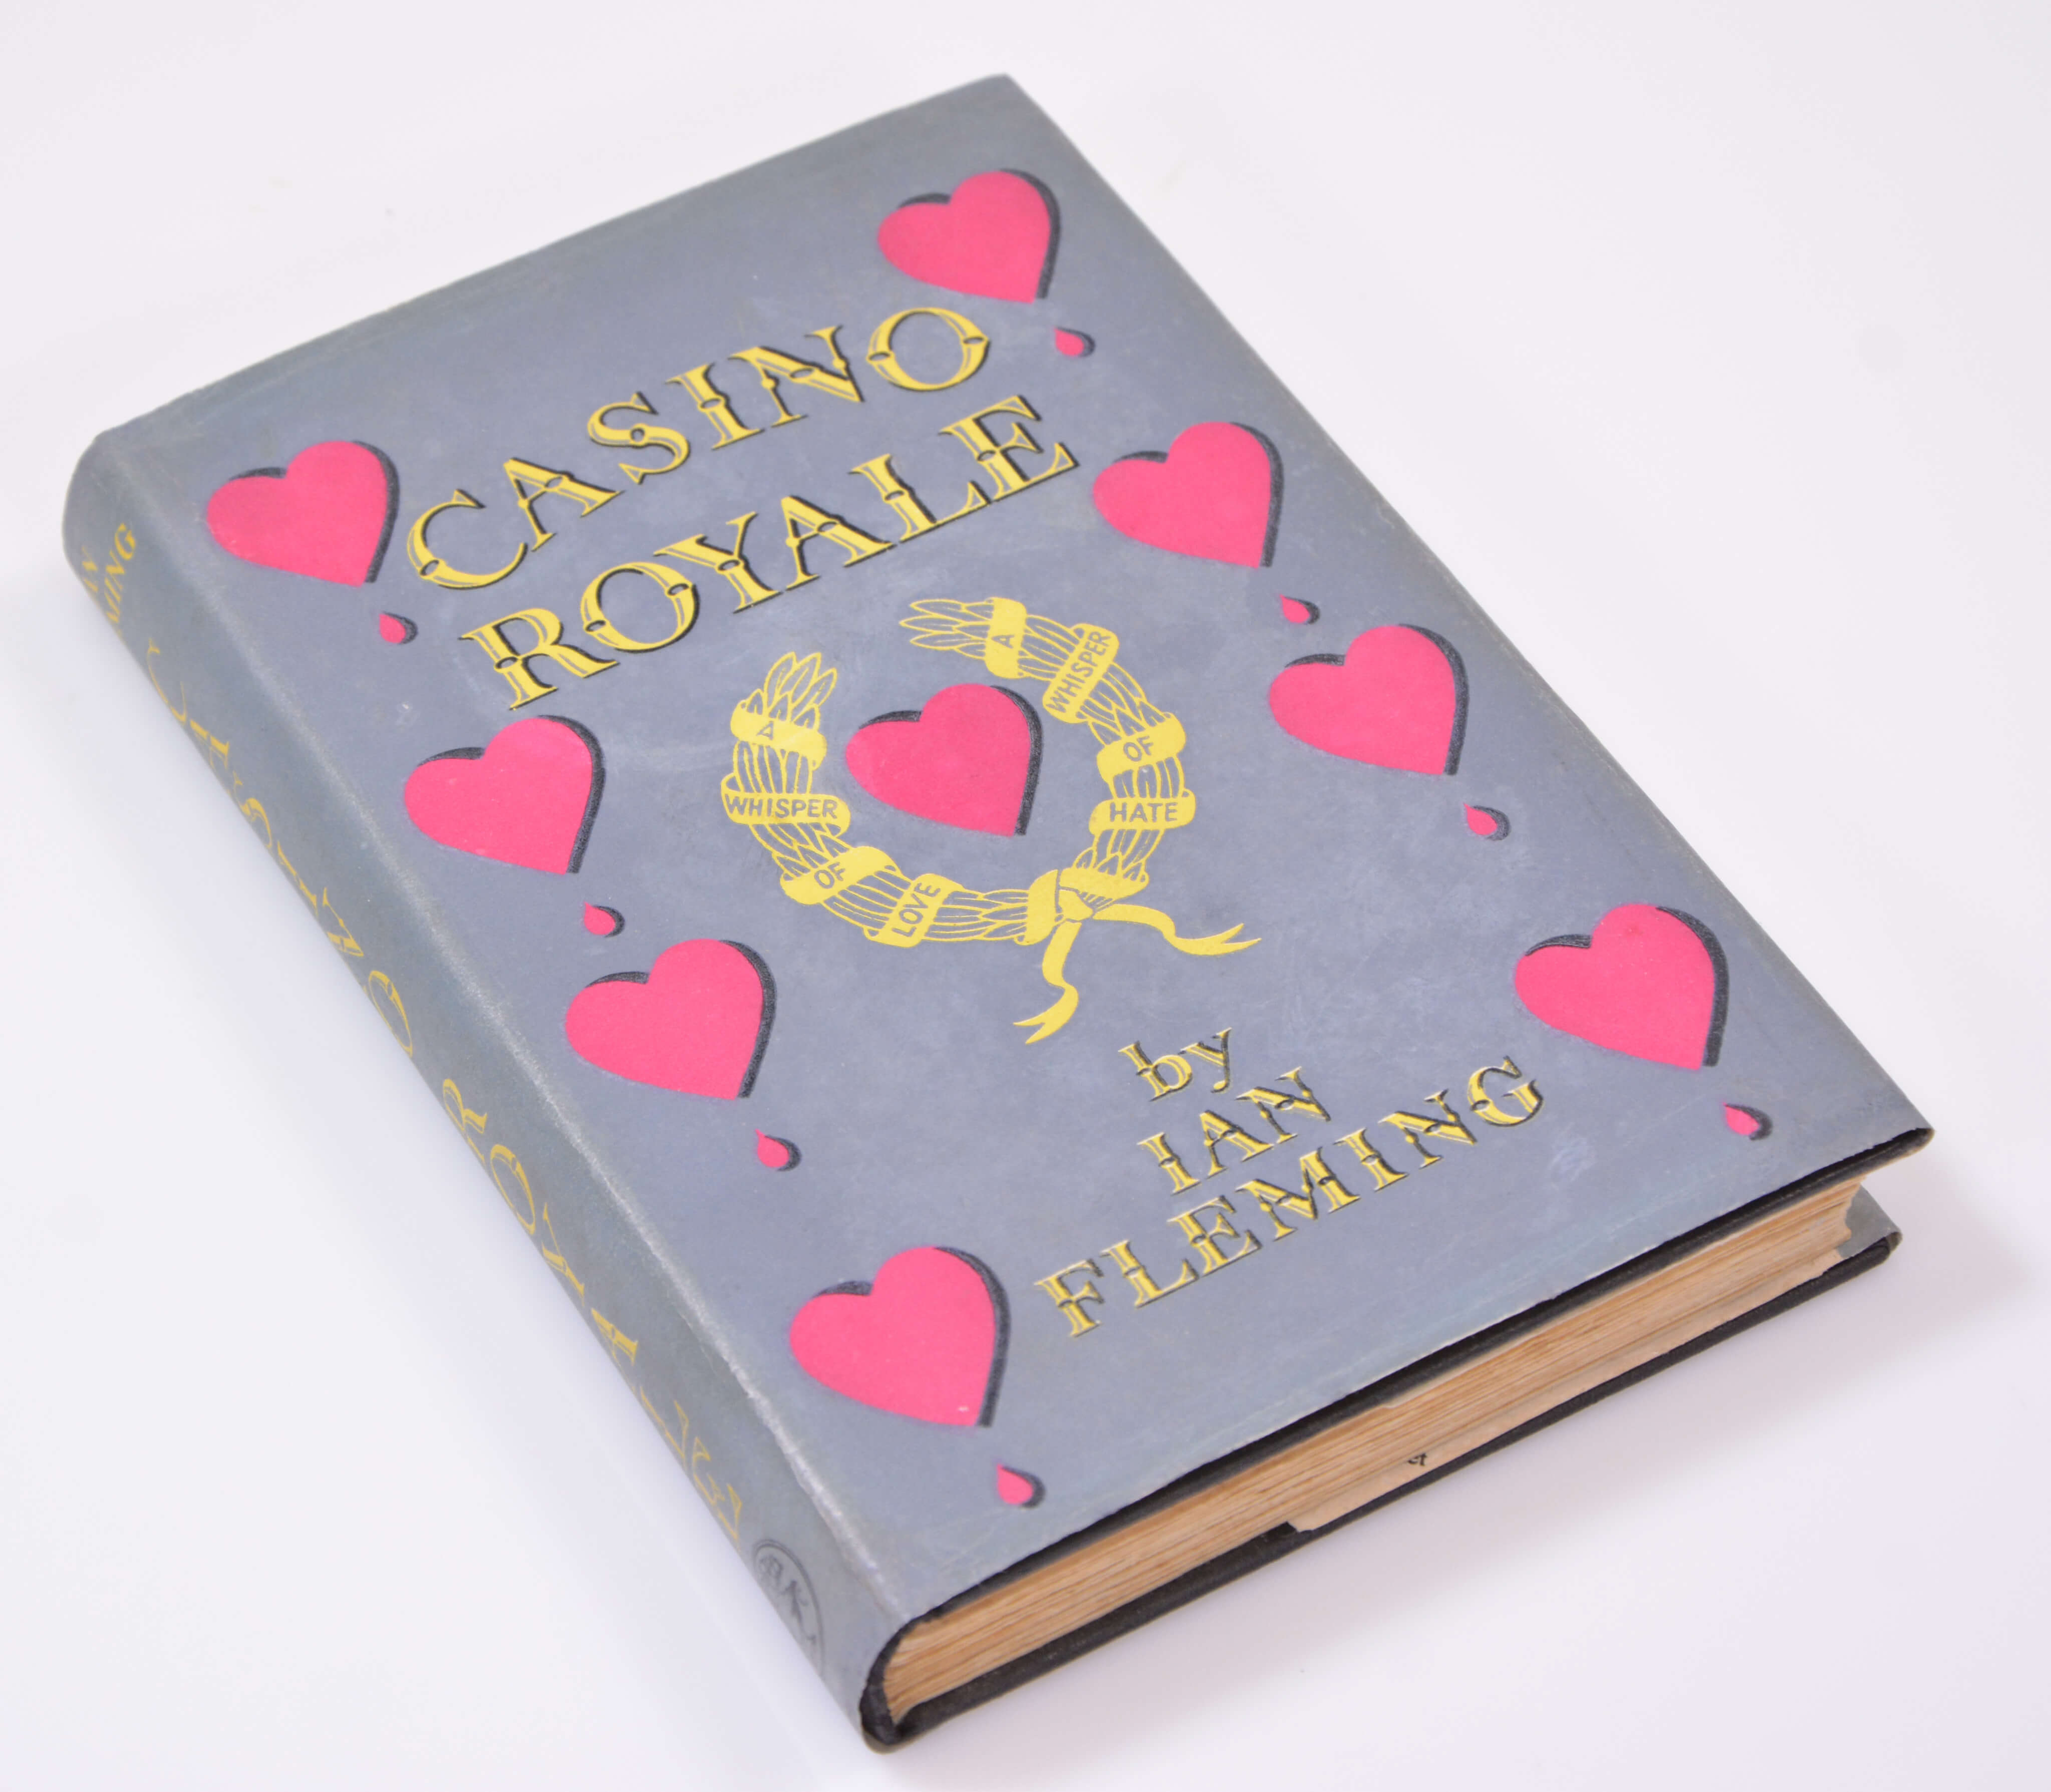 Casino Royale by Ian Flemming (1st Ed.)